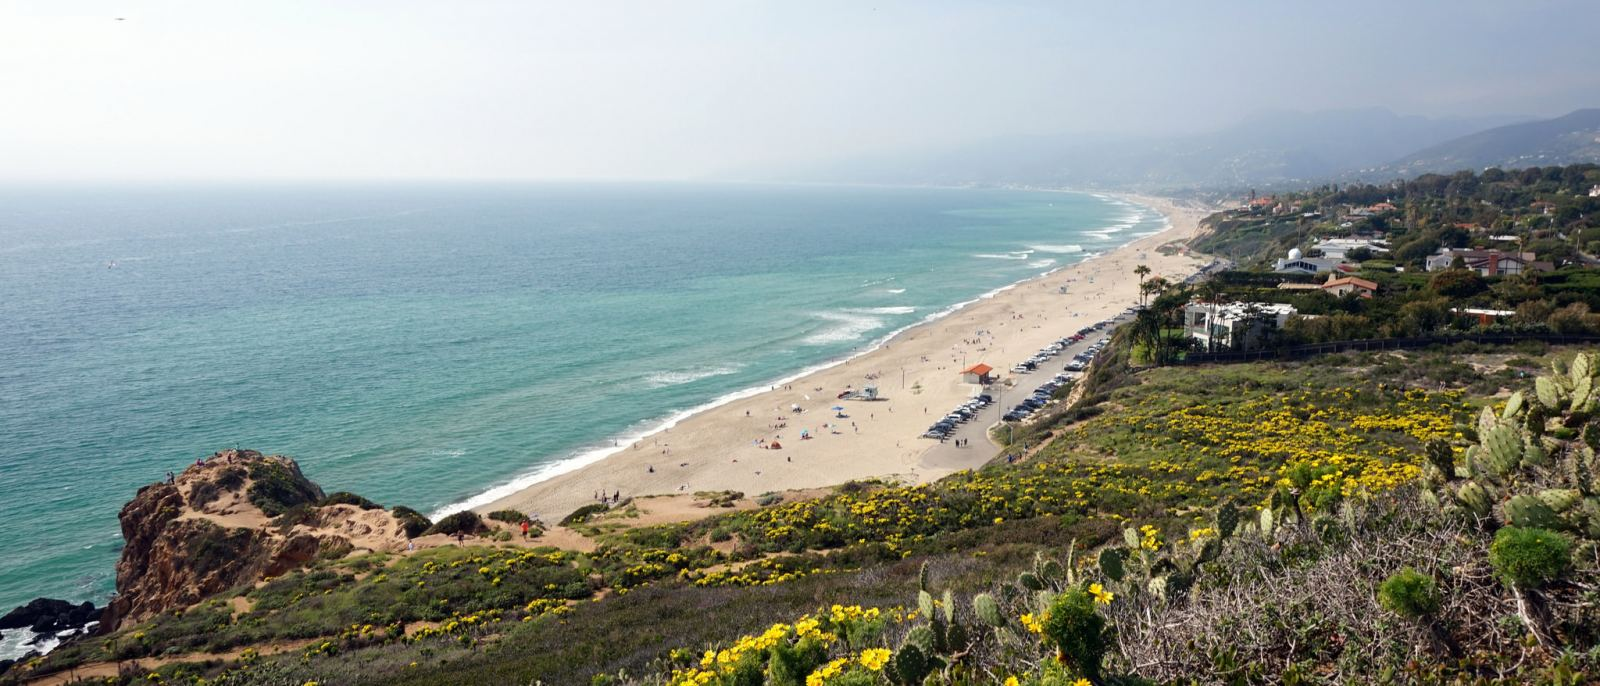 The Best Film & TV Beach Locations in LA | Discover Los Angeles